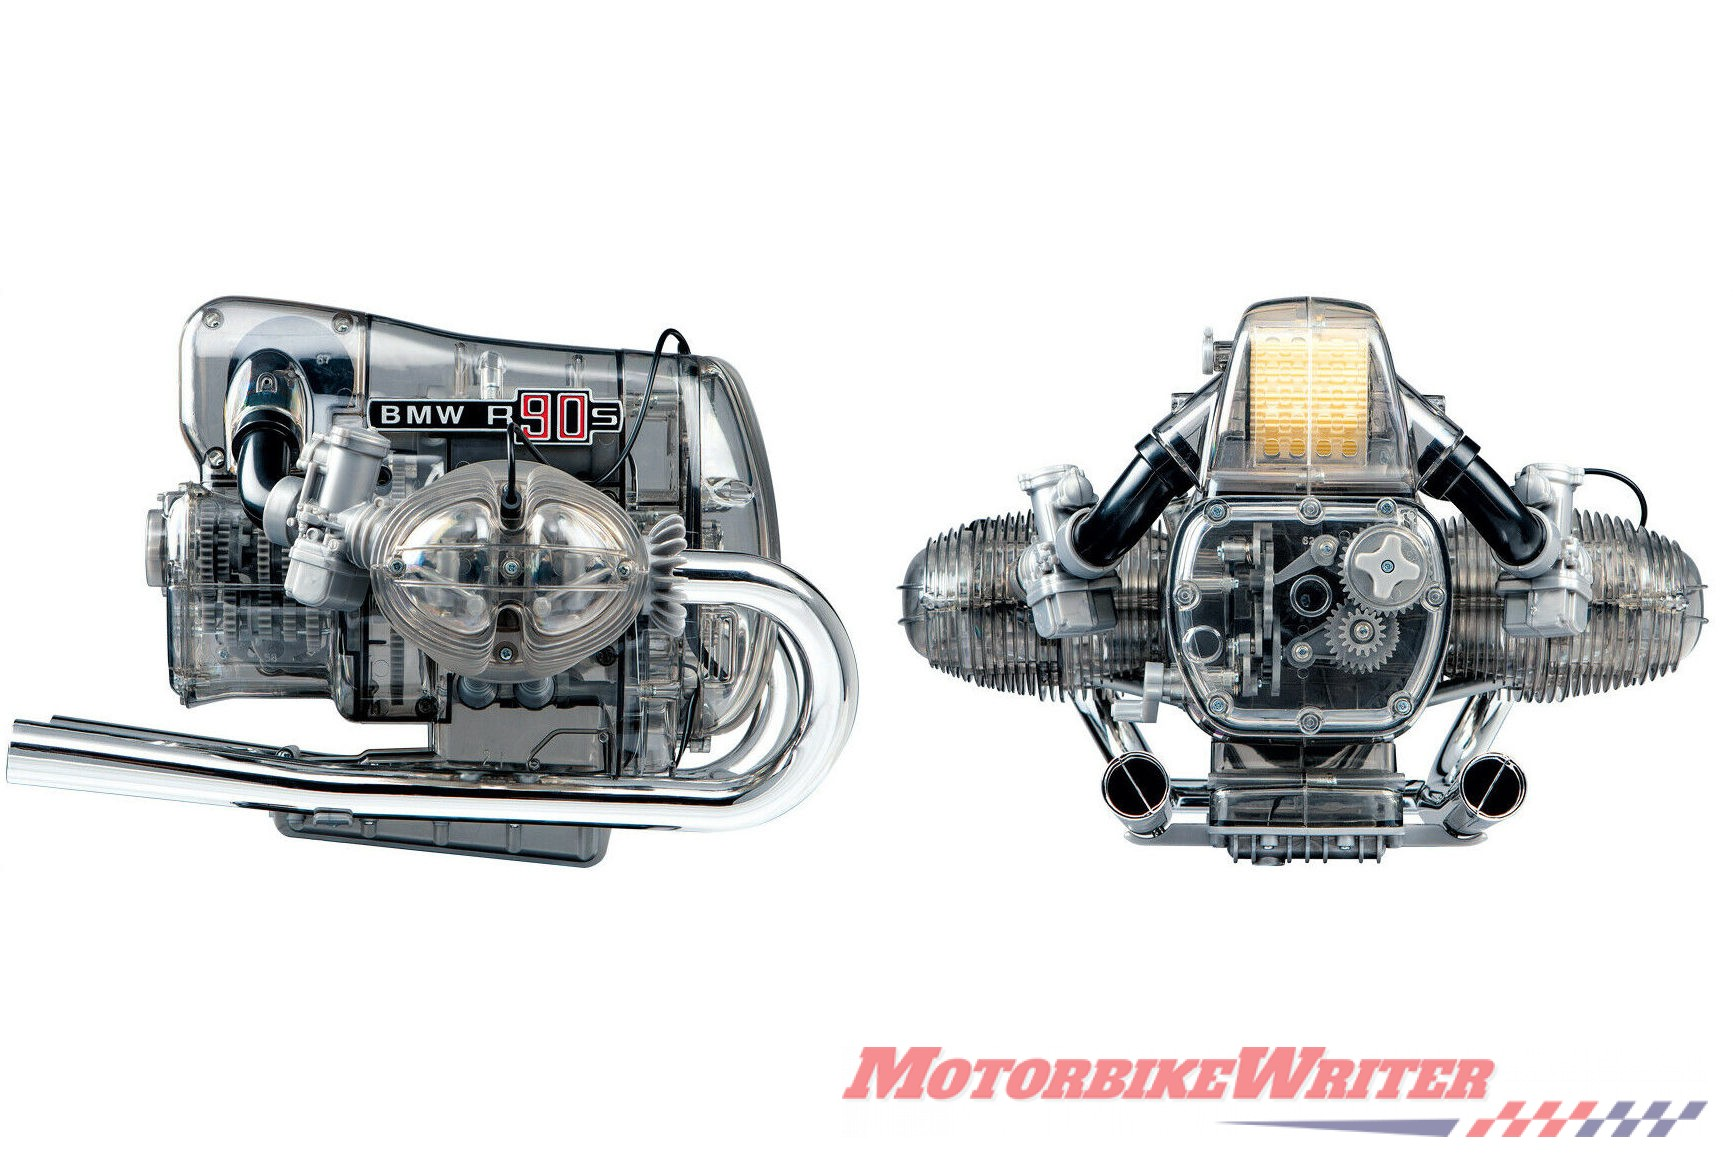 BMW R 90 S Flat twin Airhead boxer Engine scale Model